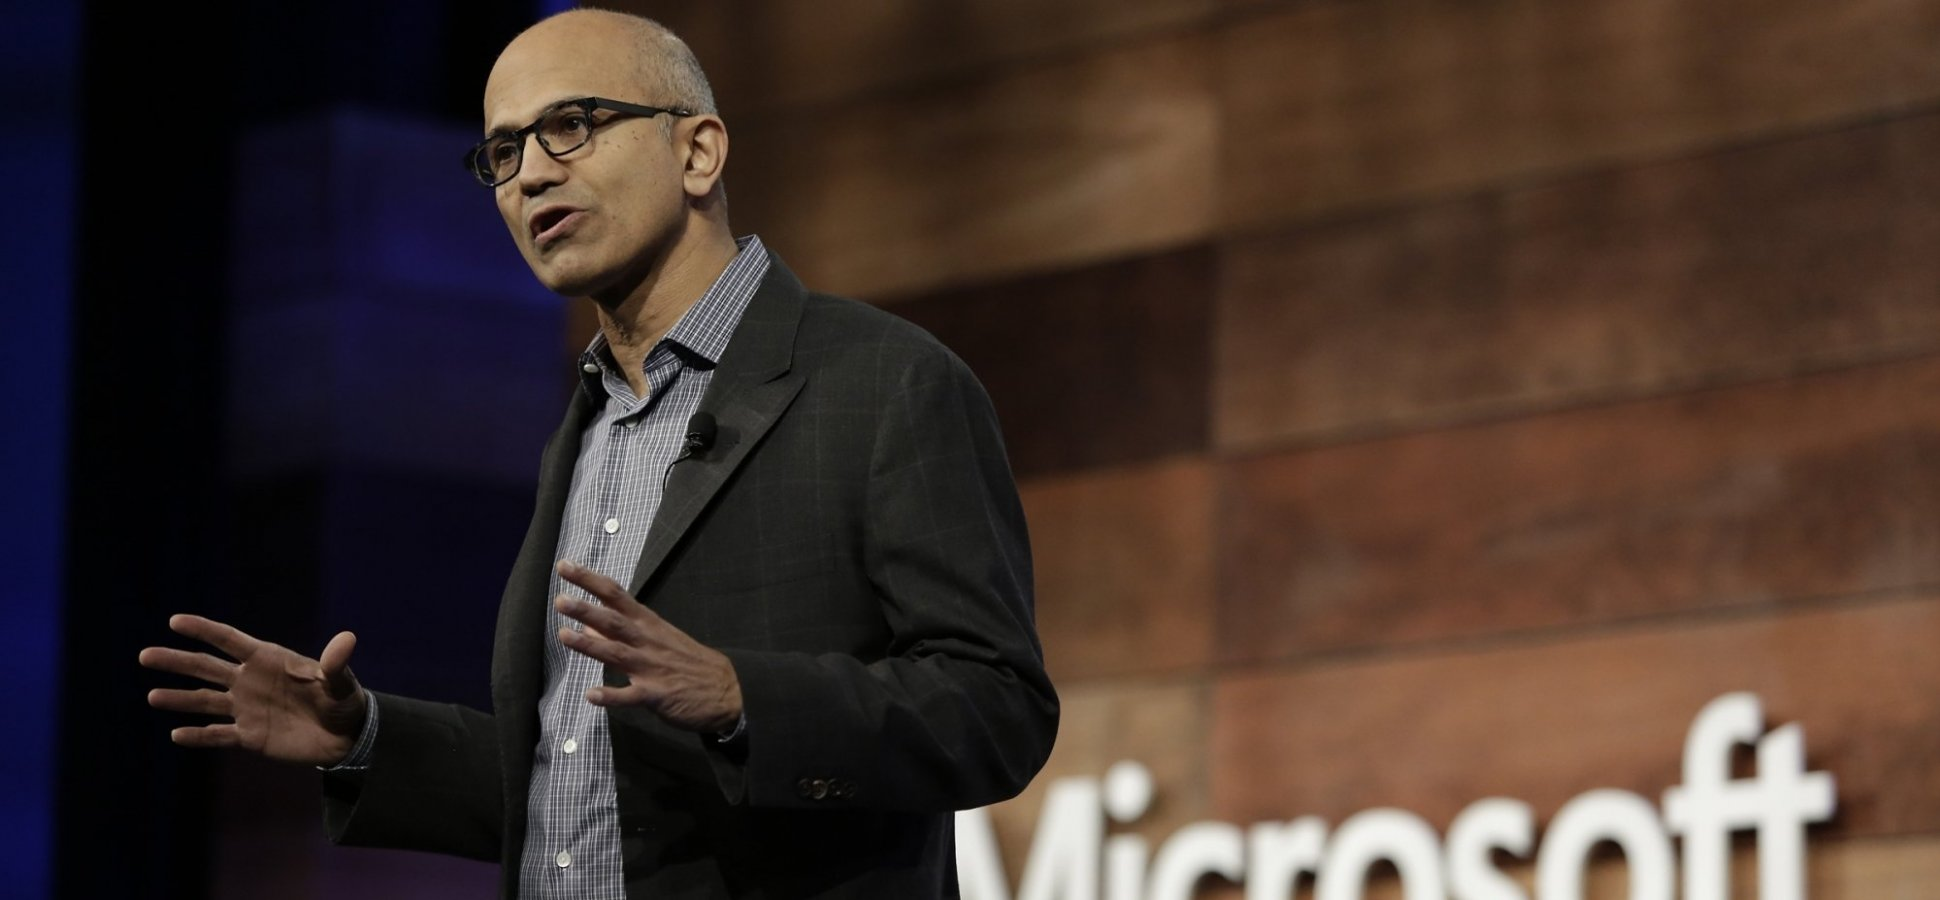 In 1 Short Sentence, Satya Nadella Summed Up What Makes Microsoft Different From Apple and Amazon